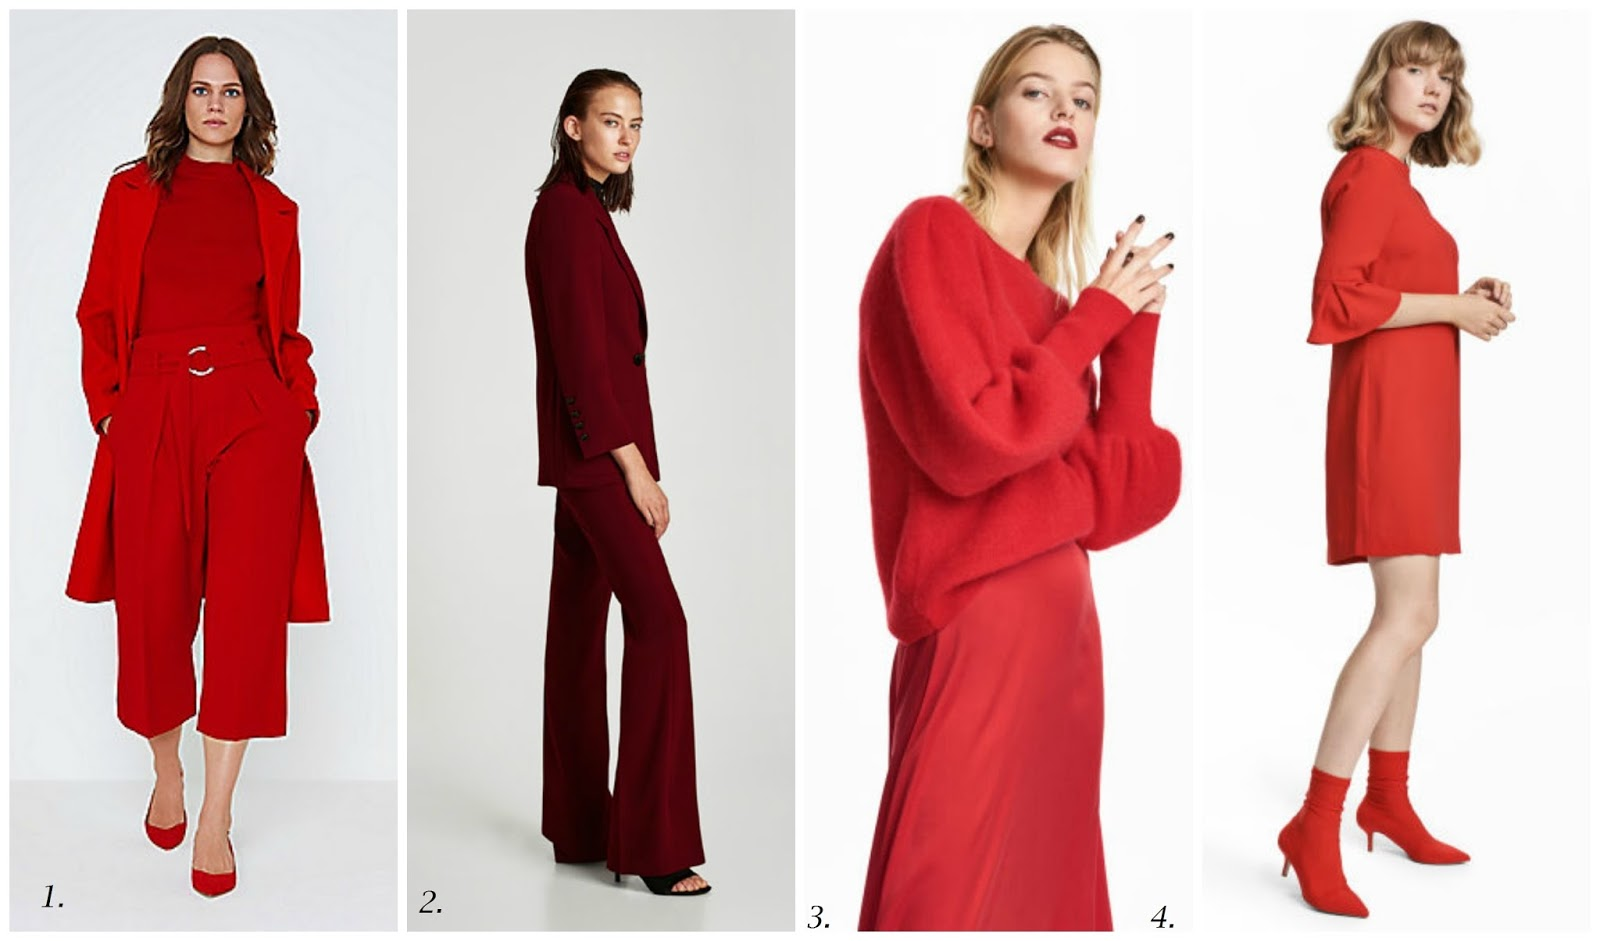 AW 17 Trend Focus - Red To Toe - How To Get The Look On The High Street - 2